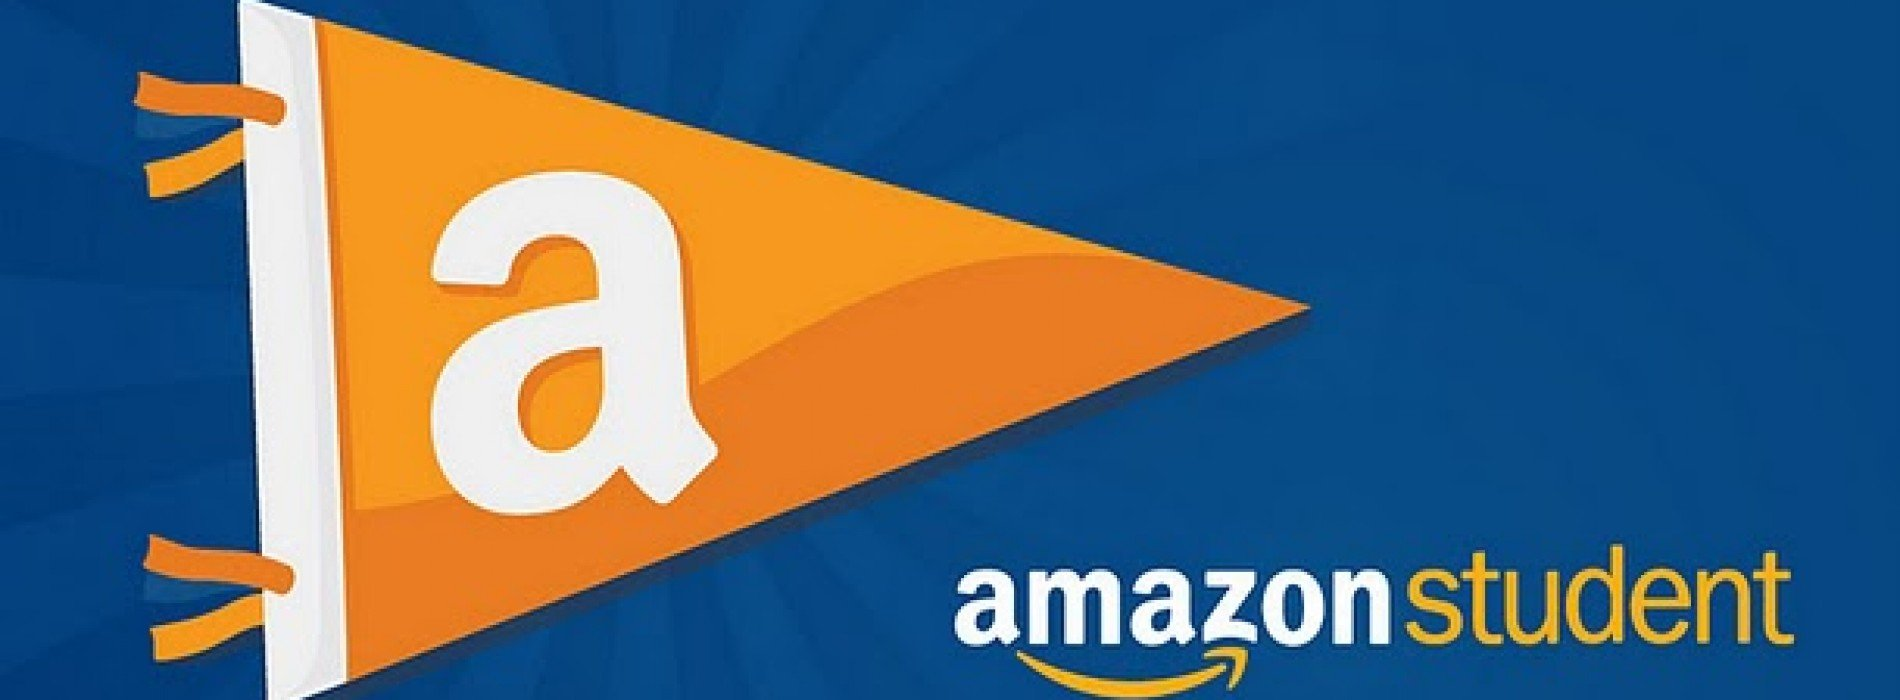 Amazon introduces Amazon Student App for Android devices